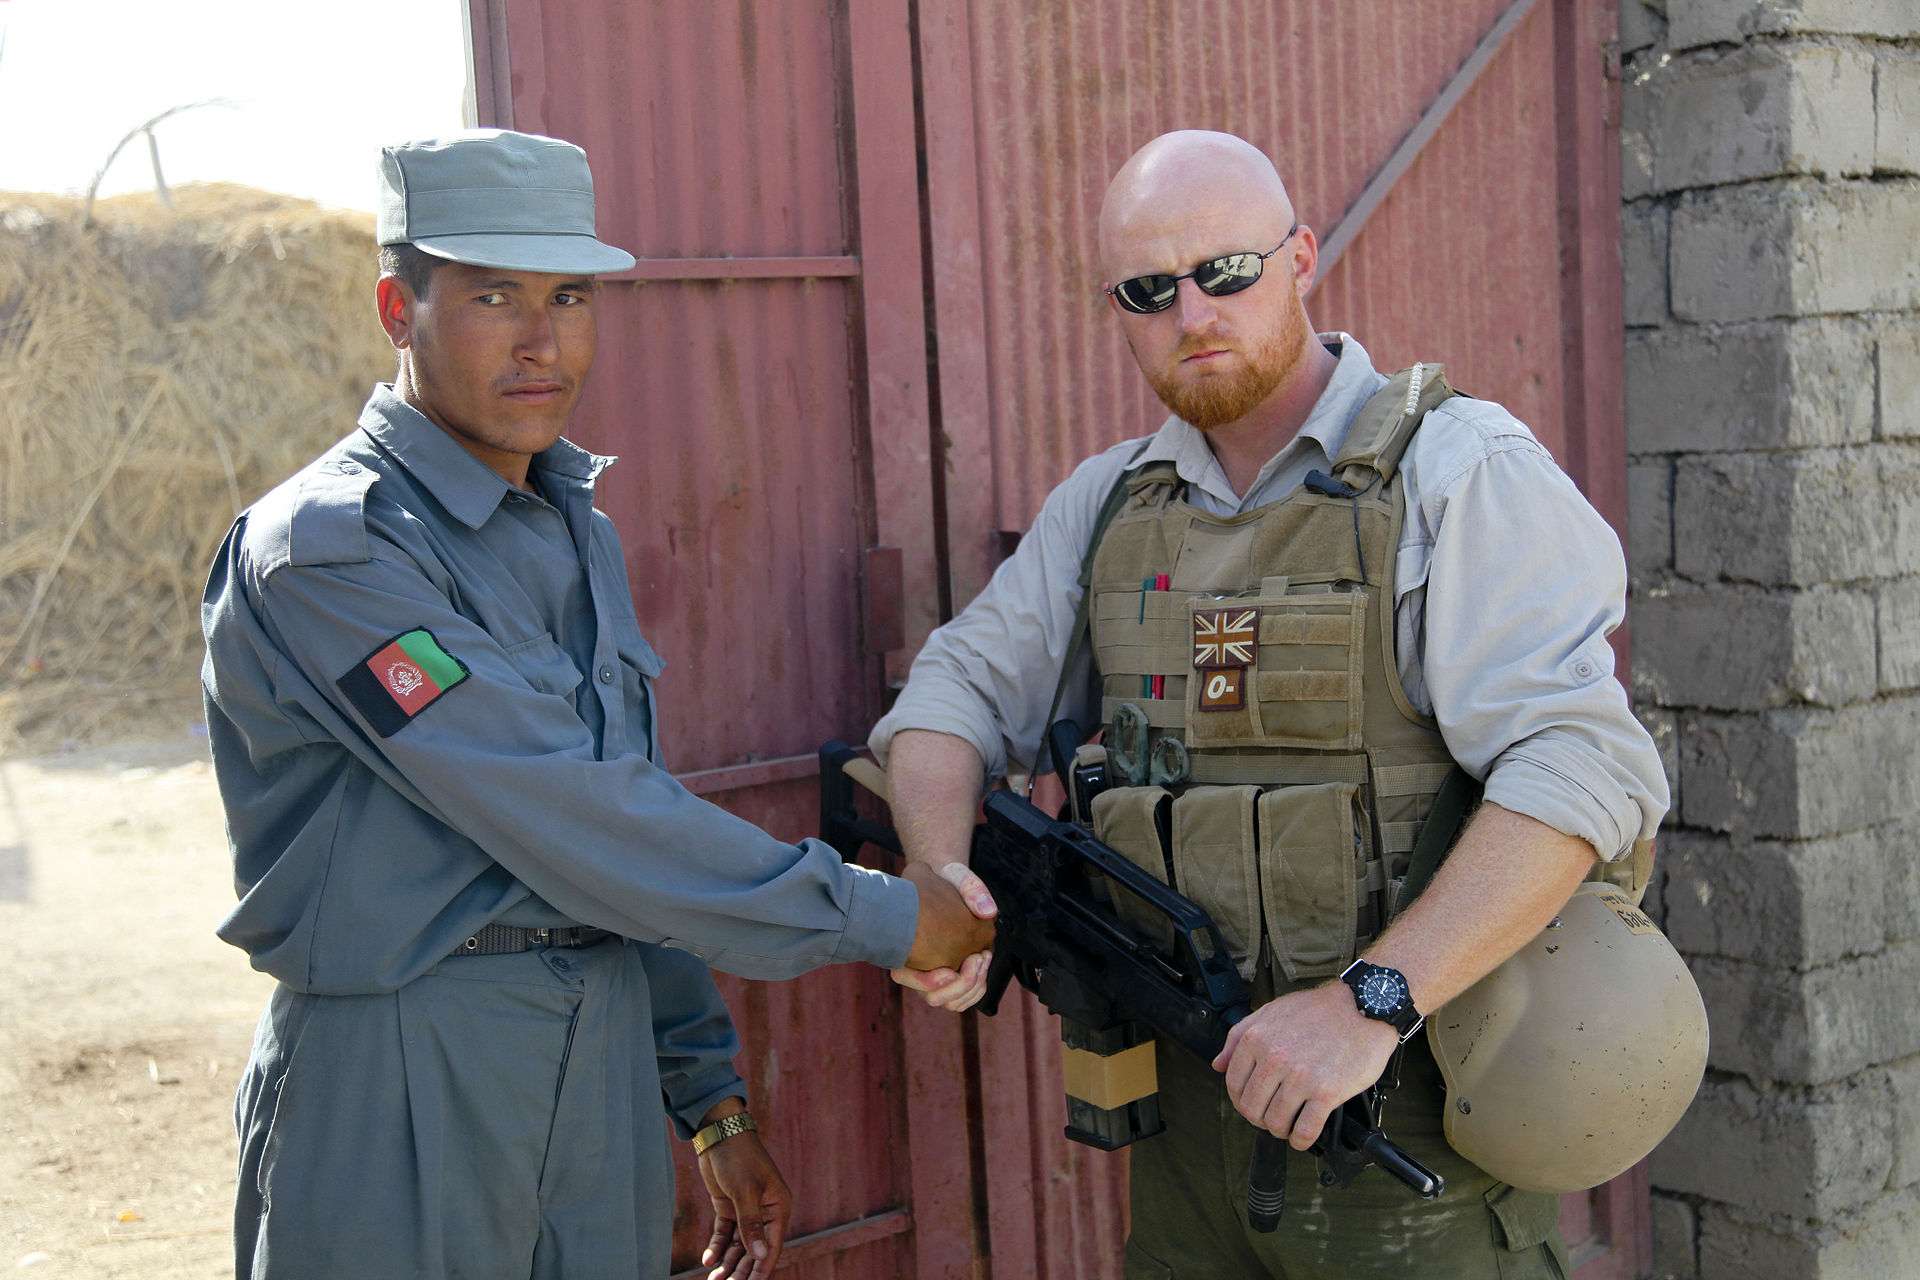 British_PMC_with_G36K_and_ANA_soldier.jpg